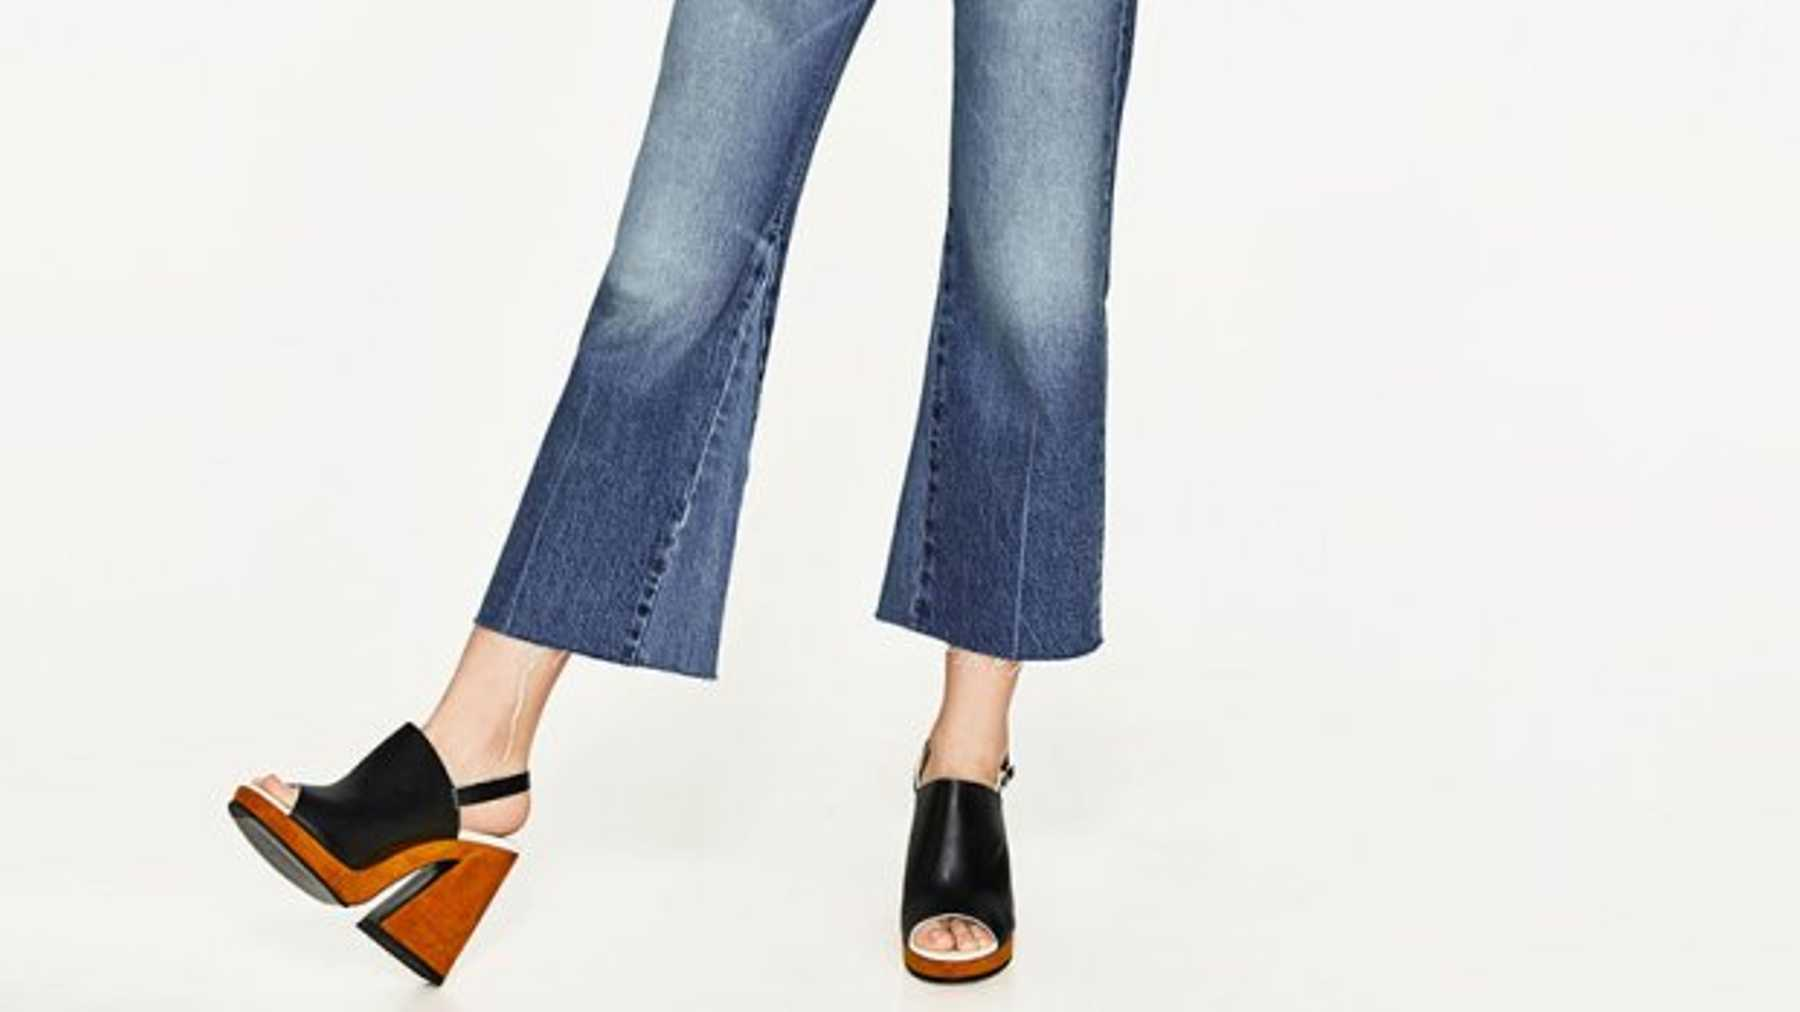 e42f3567a00 17 Of The Best New Shoes at Zara Right Now